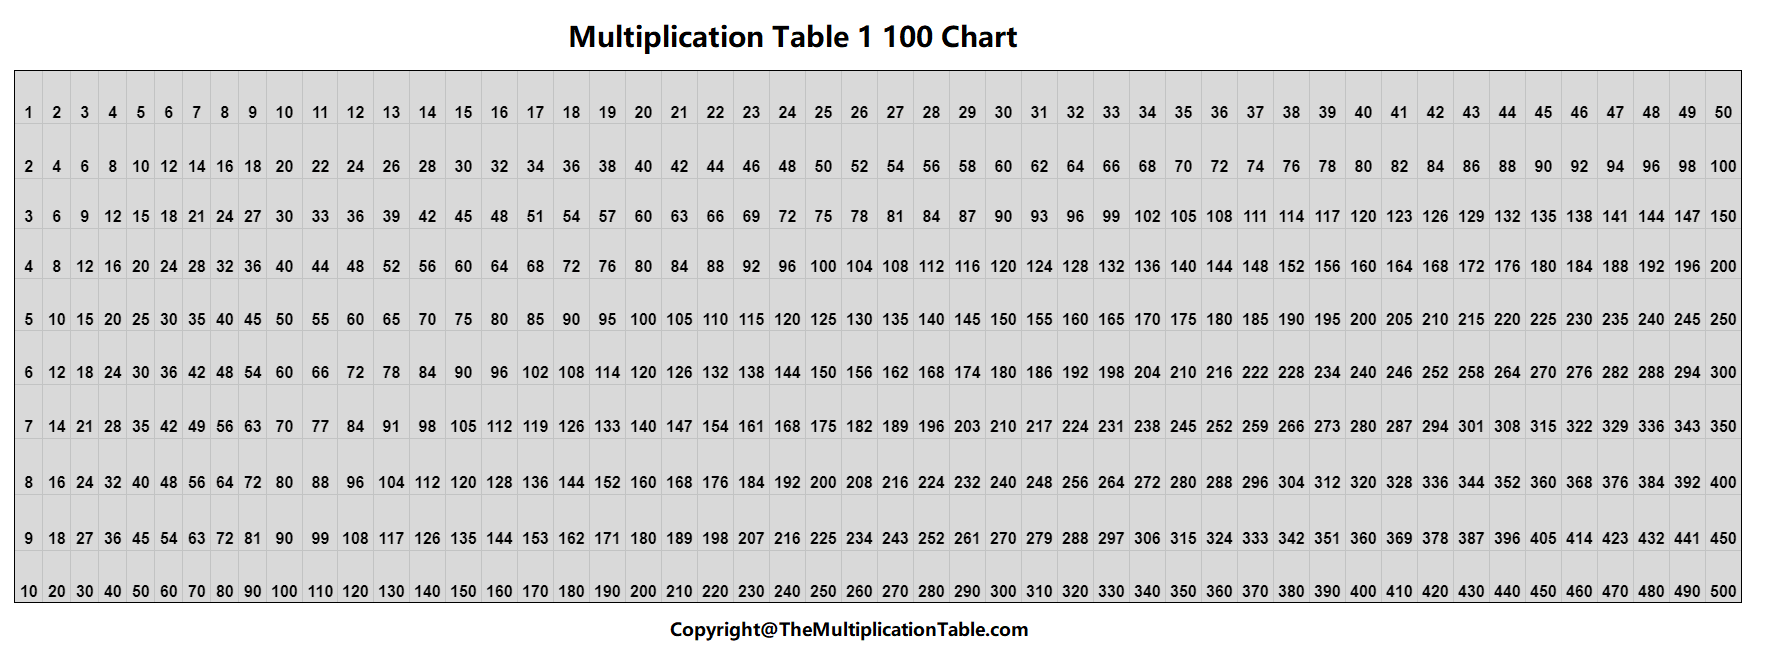 Multiplication Table 1 100 Chart